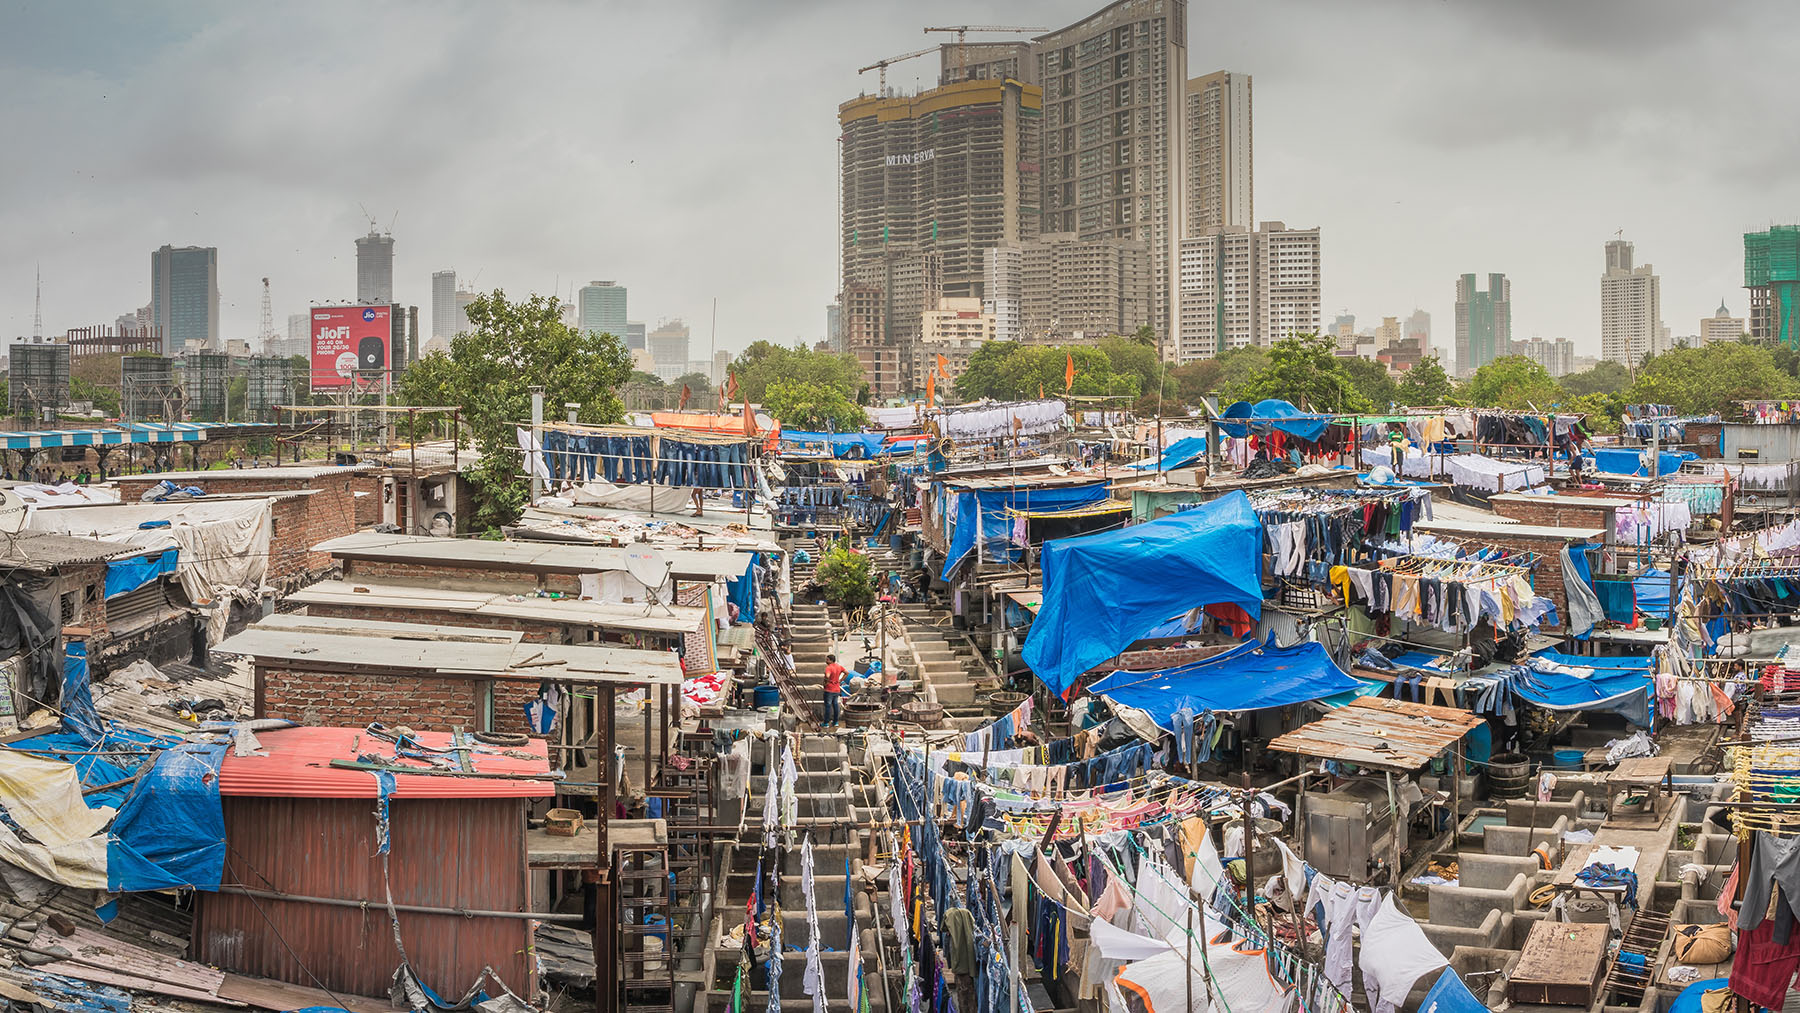 The Dhobi Ghat open-air laundry in the city of Mumbai. Cities and dense urban areas present particular health challenges, but also unique opportunities. (StevenK / Shutterstock.com)